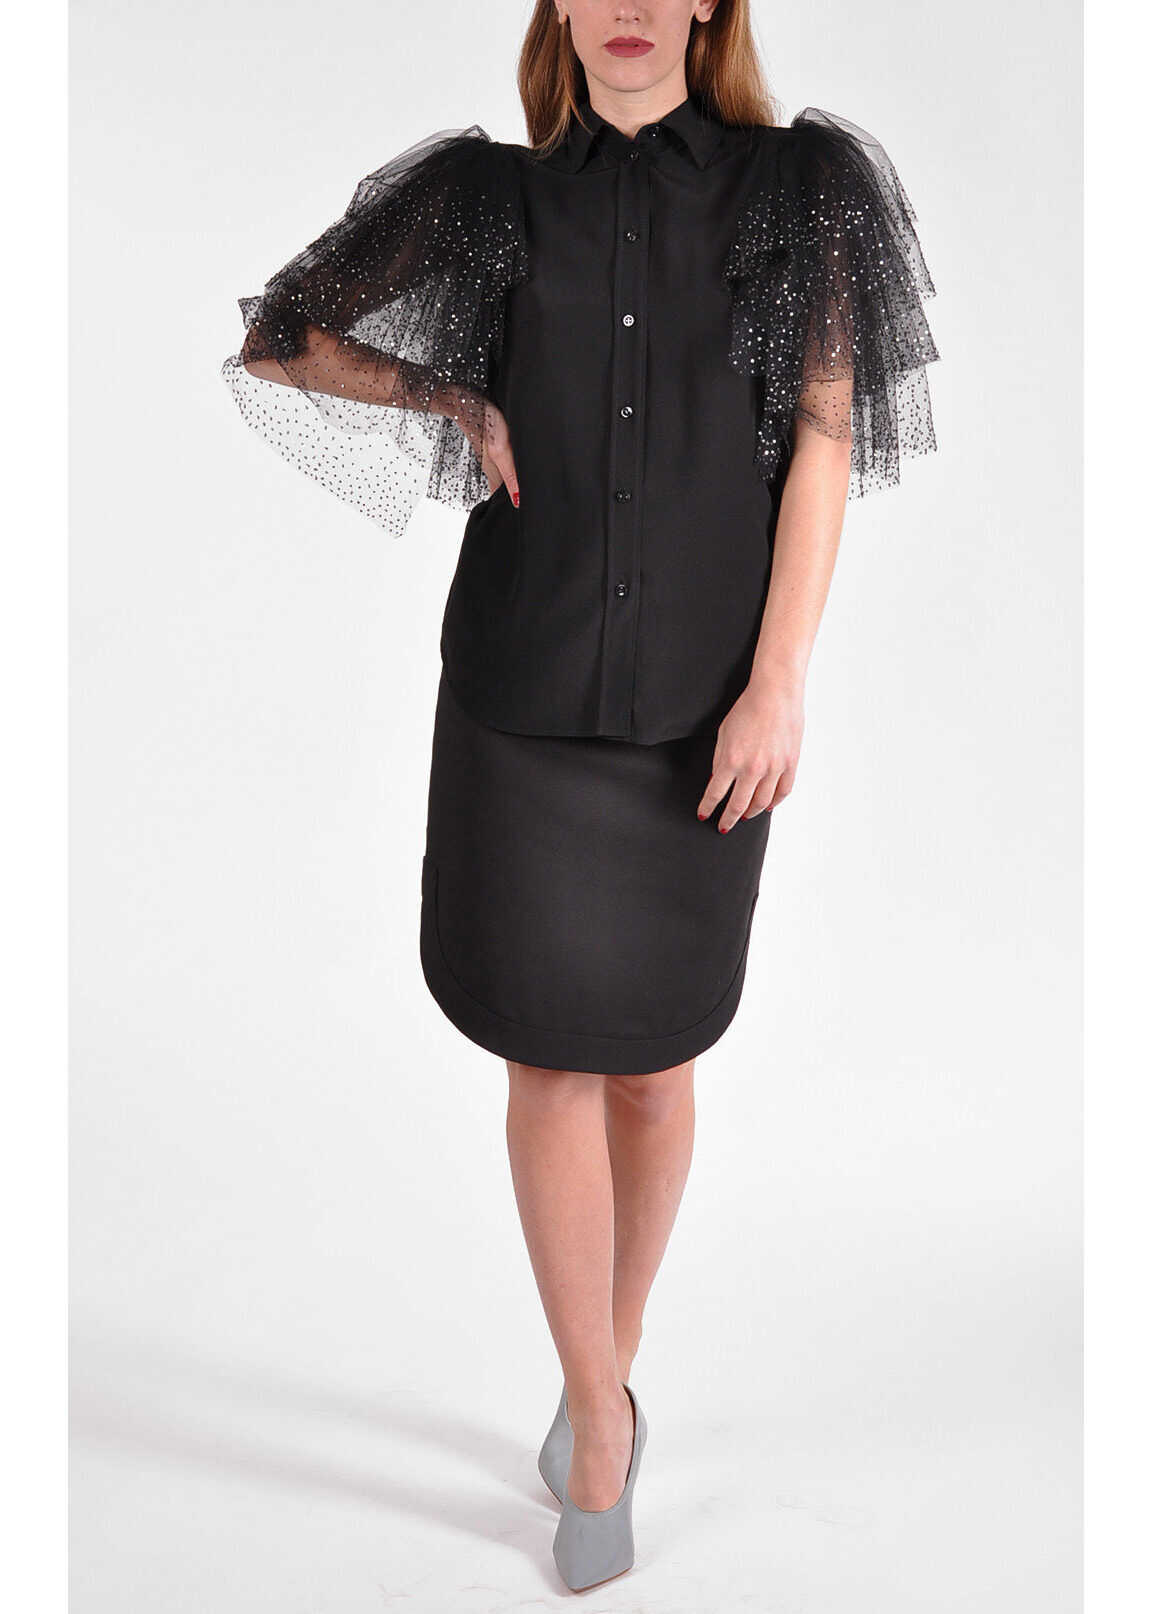 Givenchy Silk Blouse with Tulle and Sequins BLACK